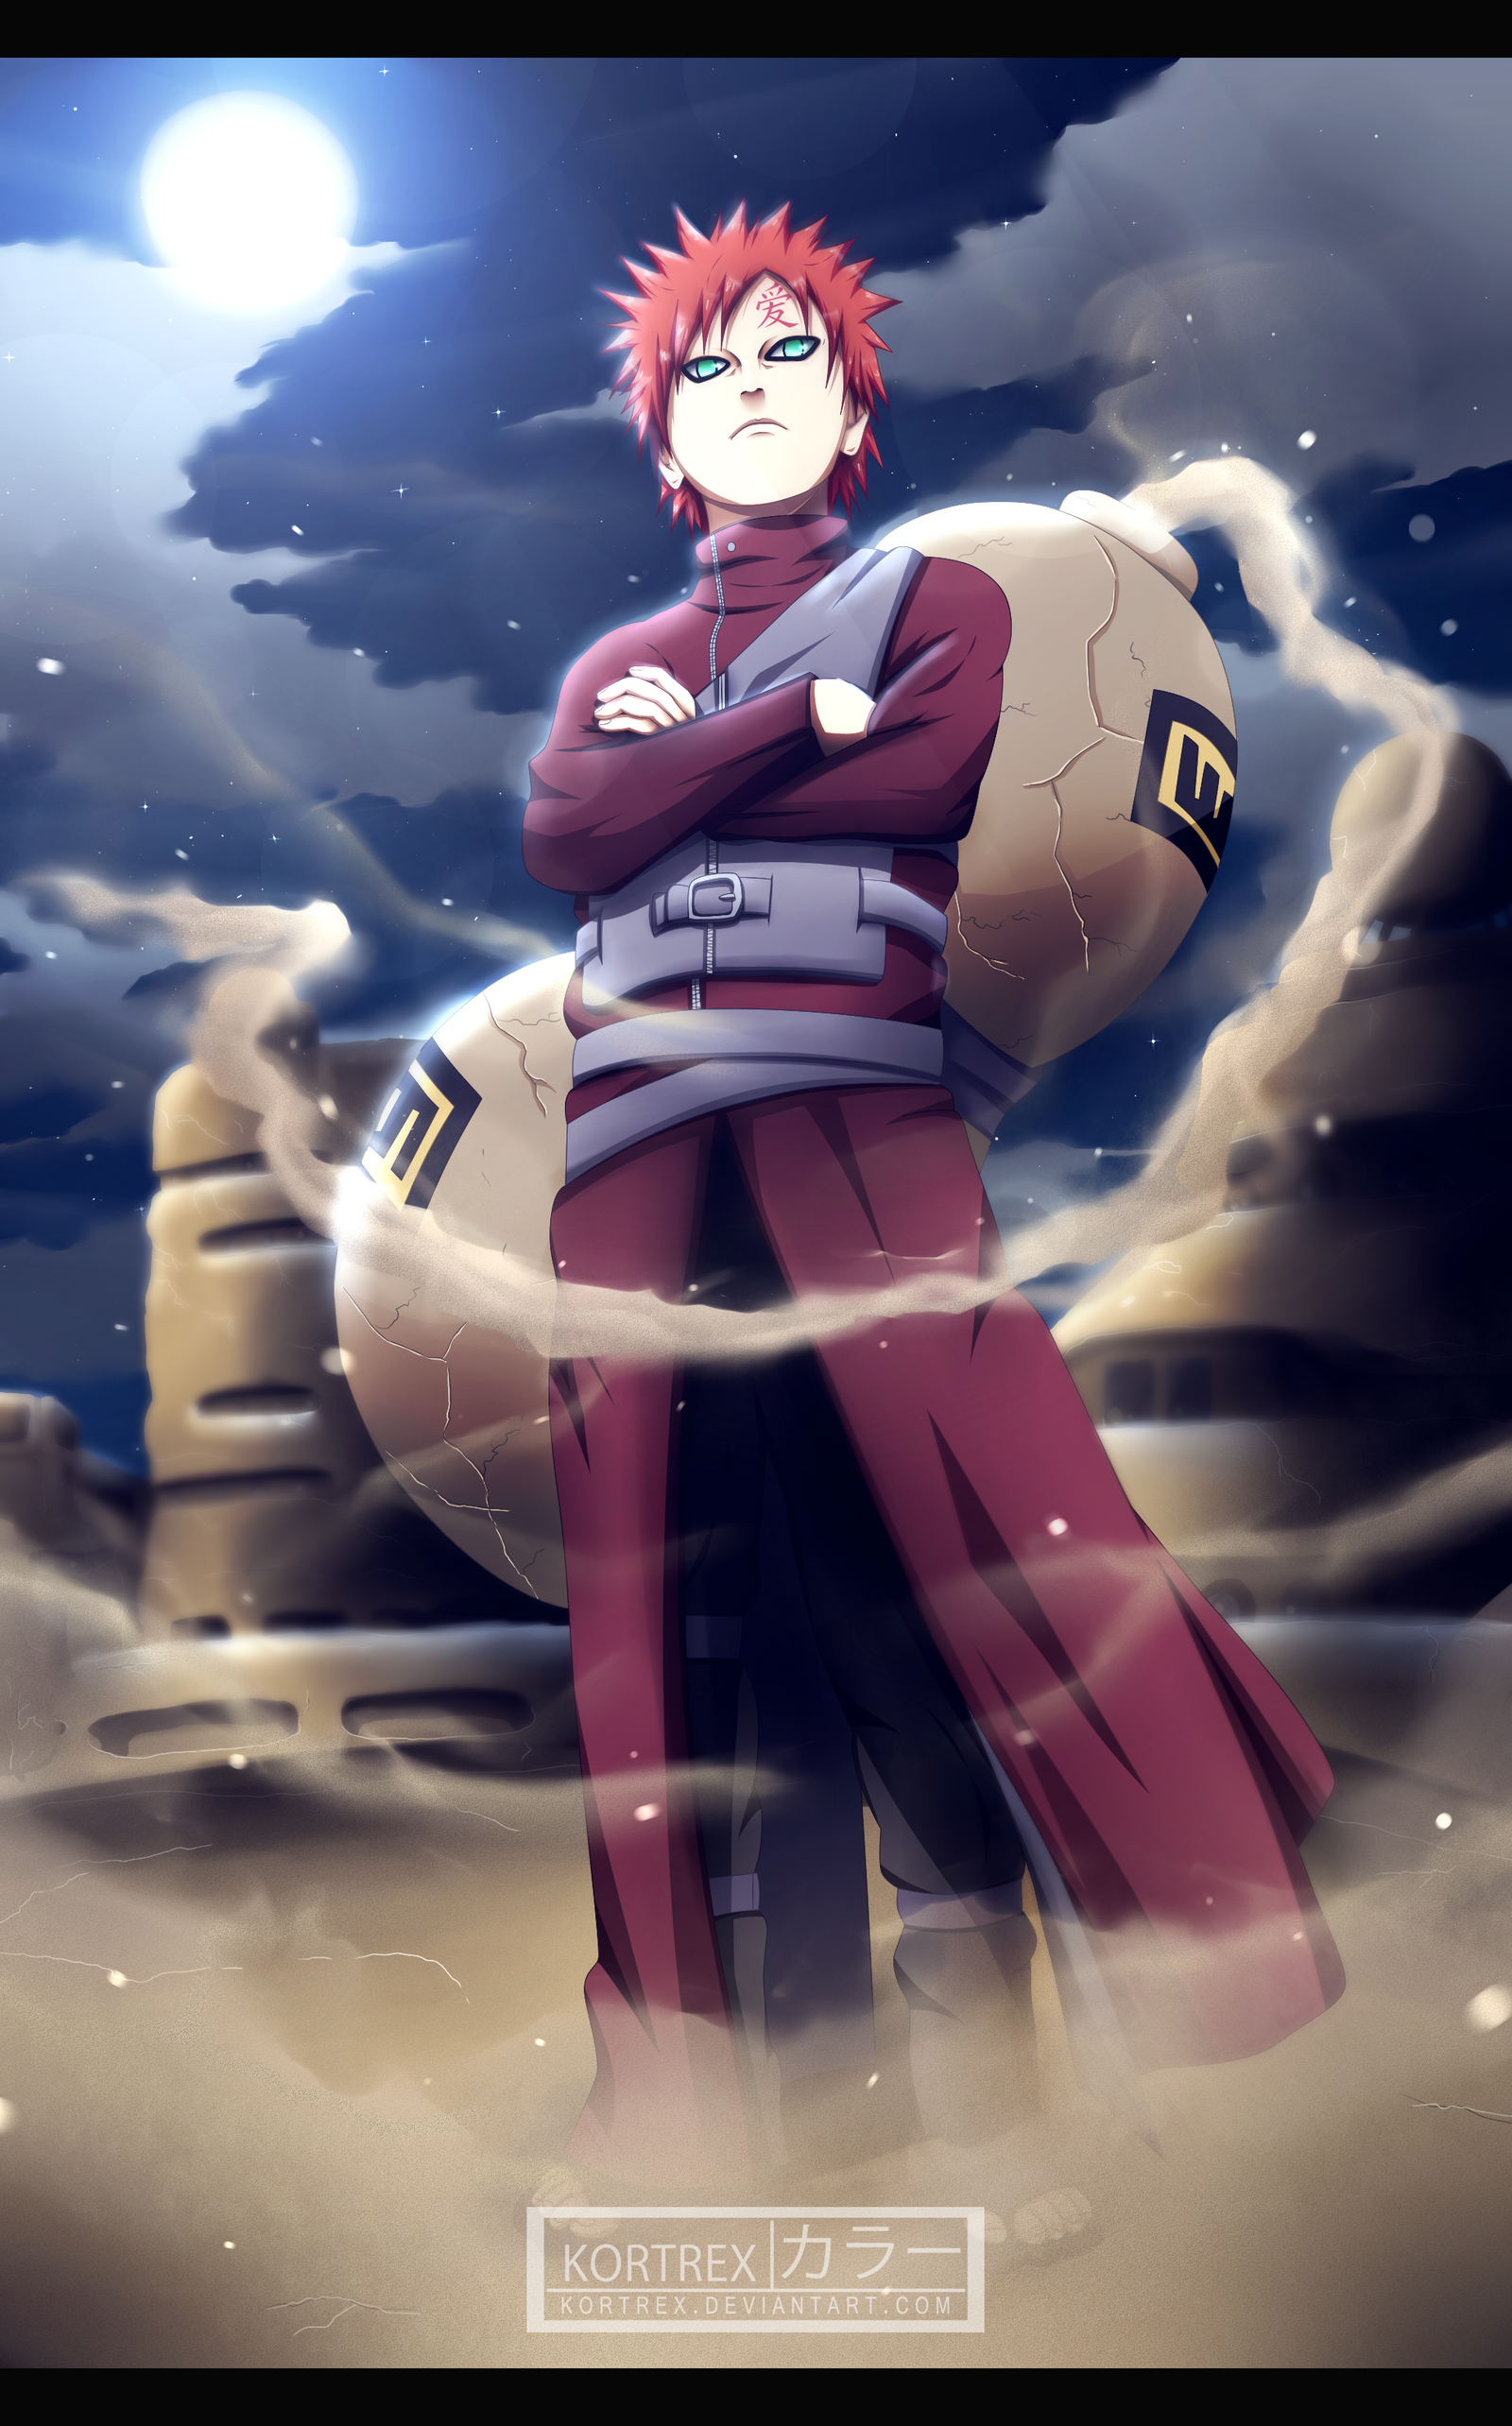 naruto chapter 248 sabaku no gaara by kortrex on deviantart